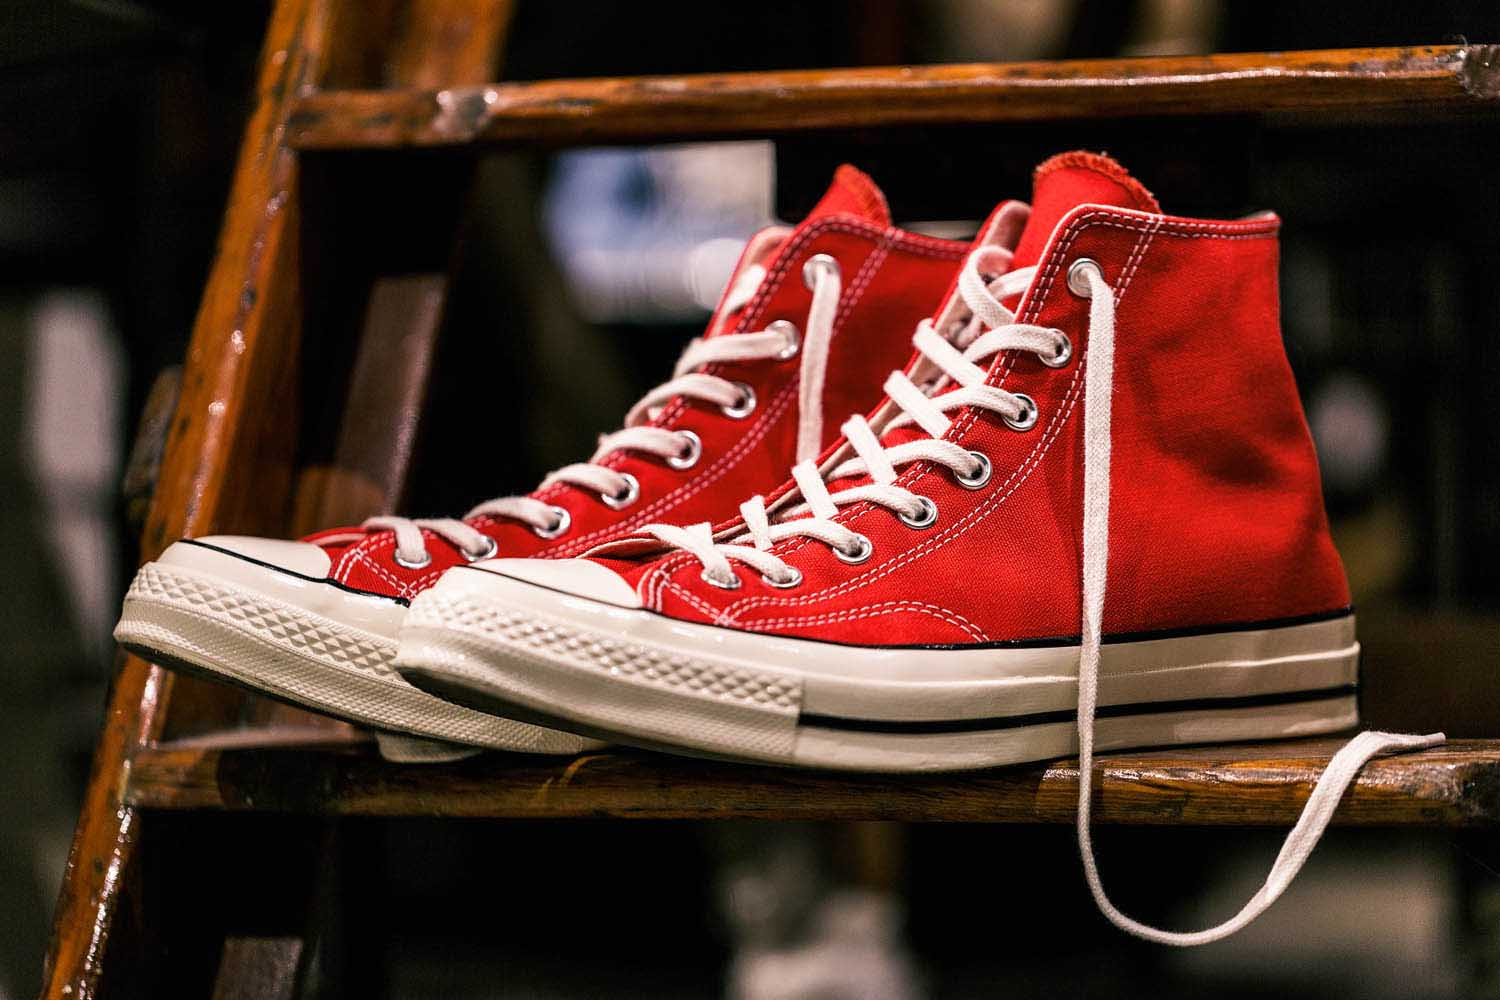 Converse 1970s red